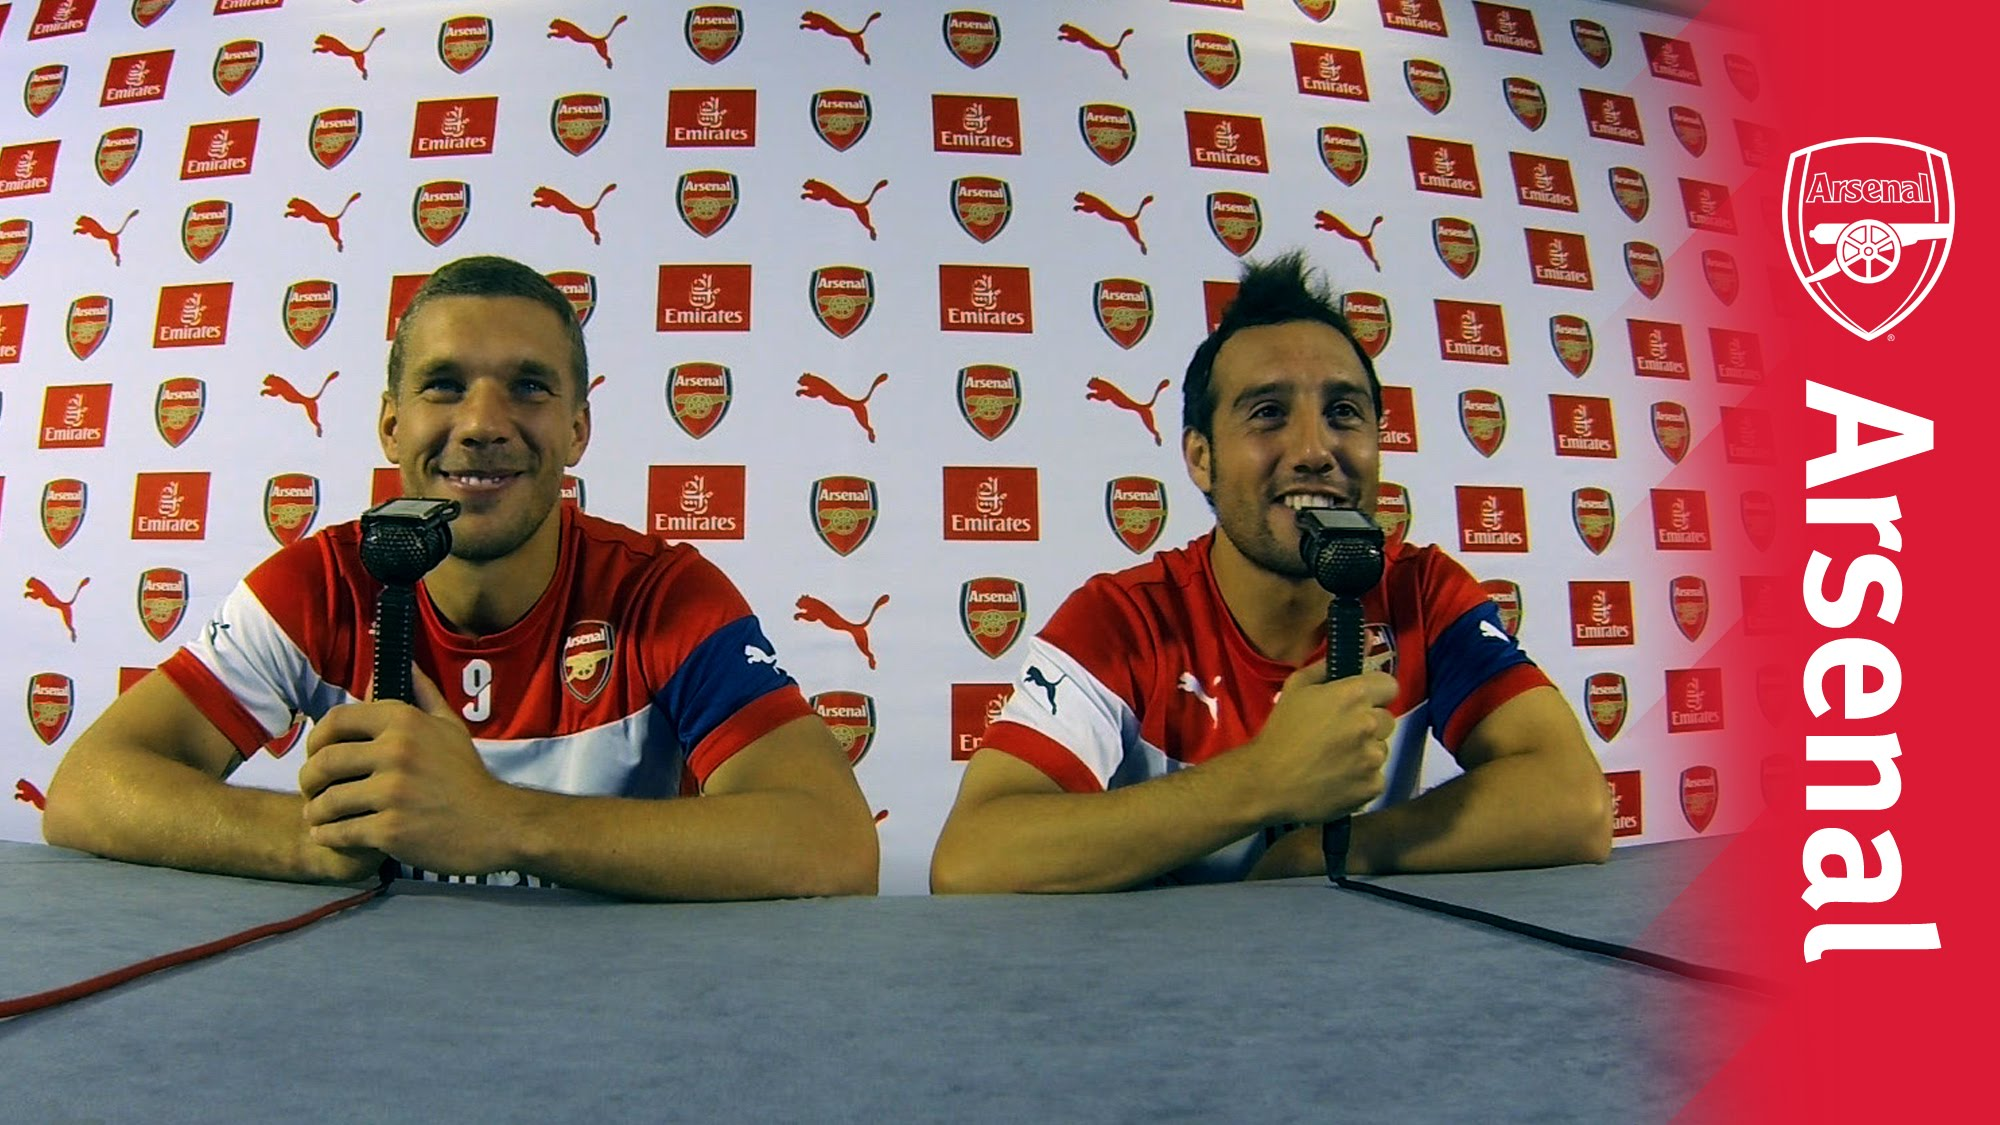 Podolski kommentiert Arsenal [Video]…